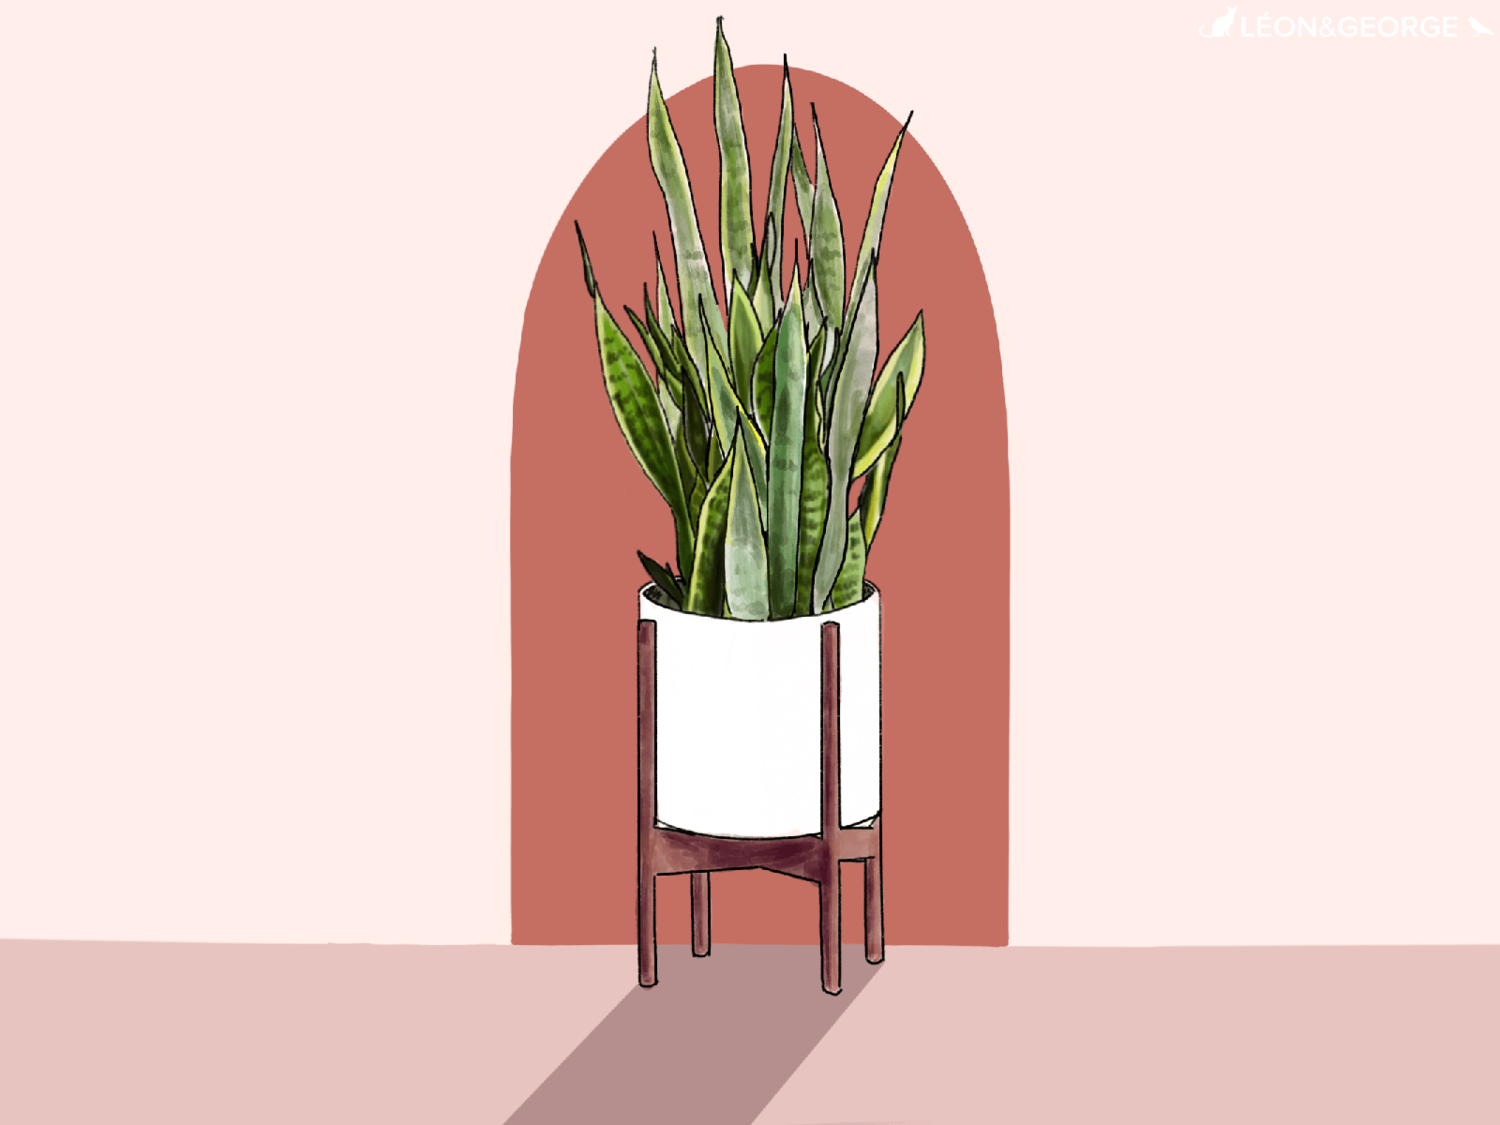 - snake plant care guide